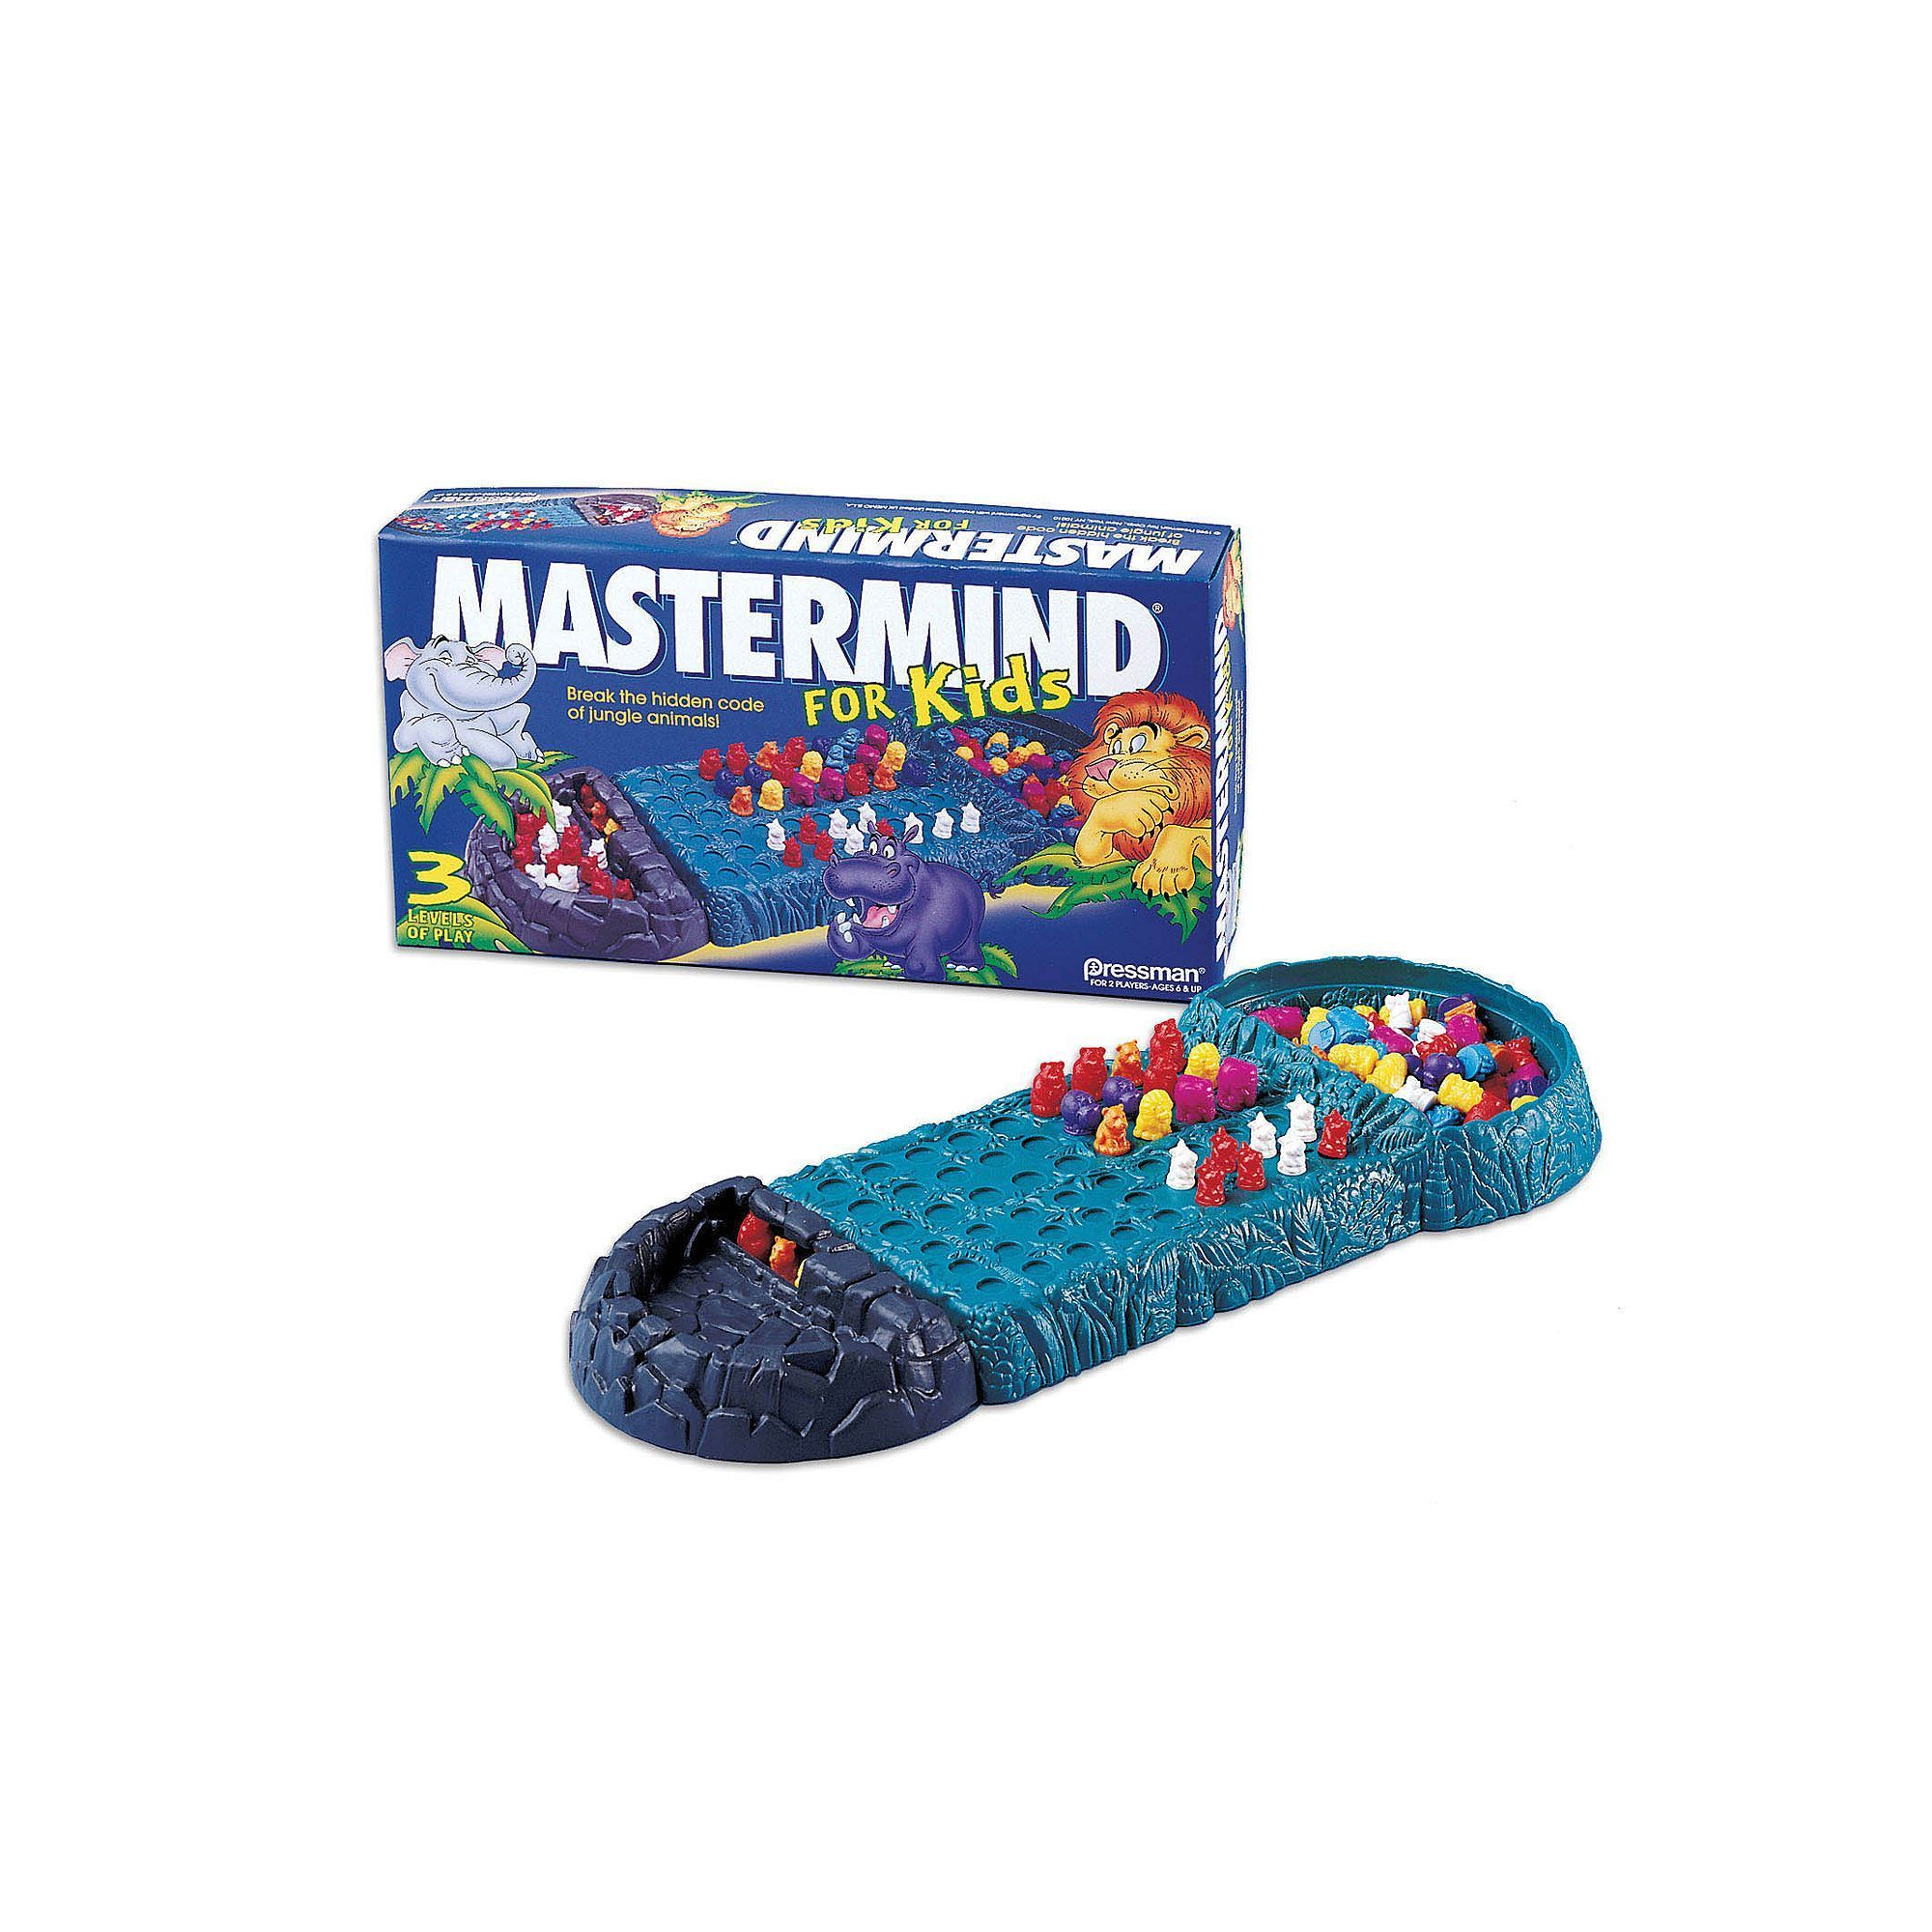 Mastermind For Kids Game by Pressman Toy, Multicolor